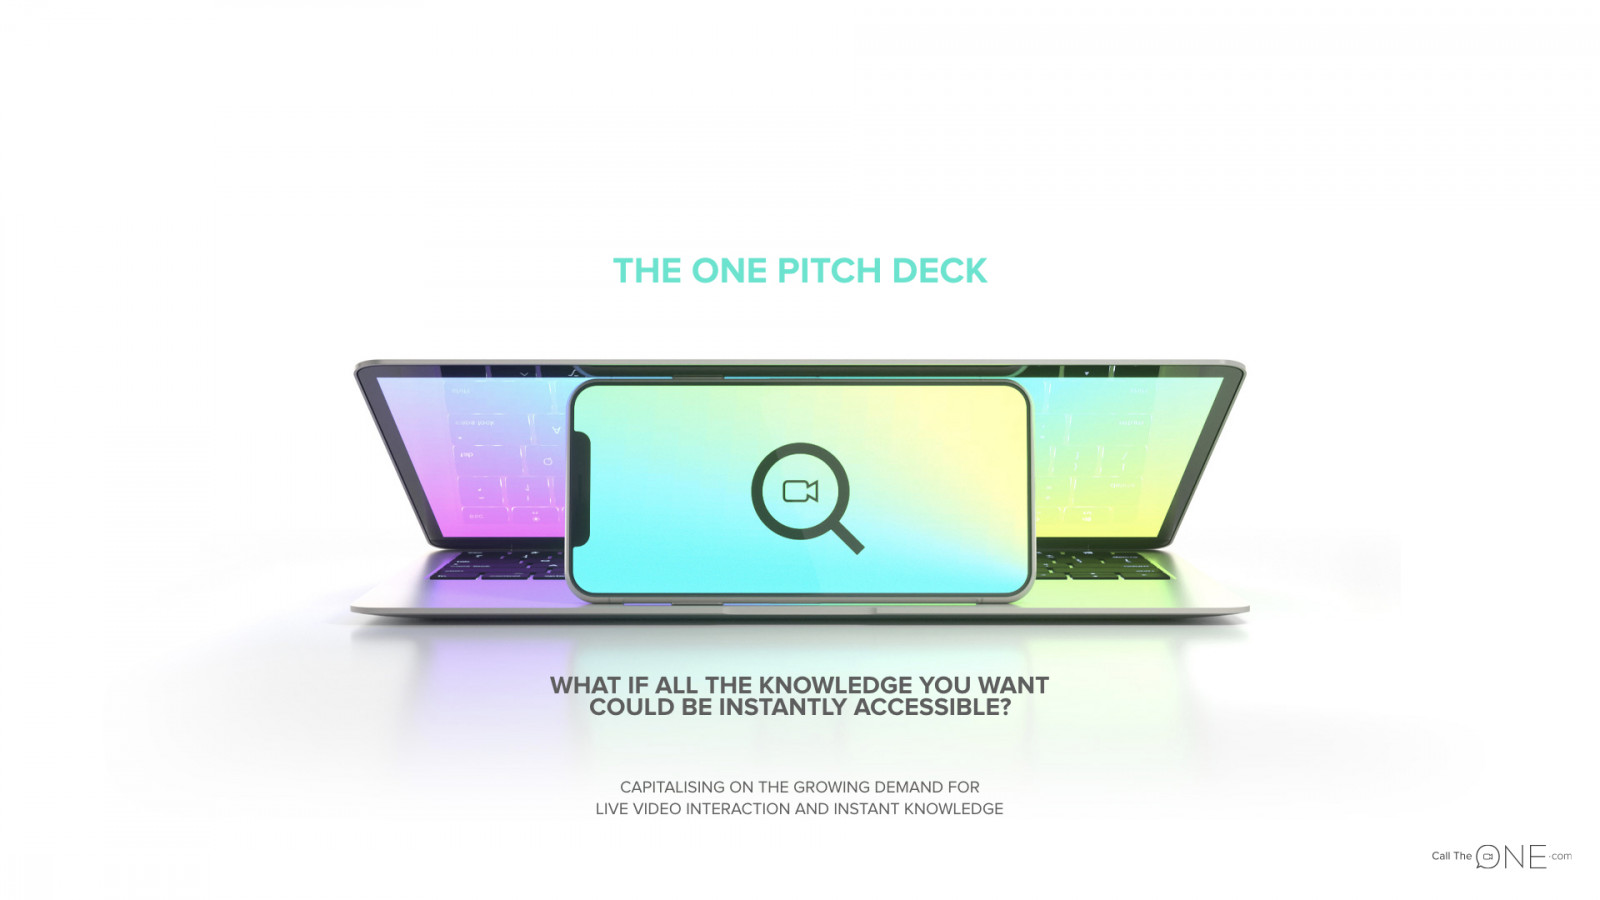 theone-pitch-deck-example-teaser